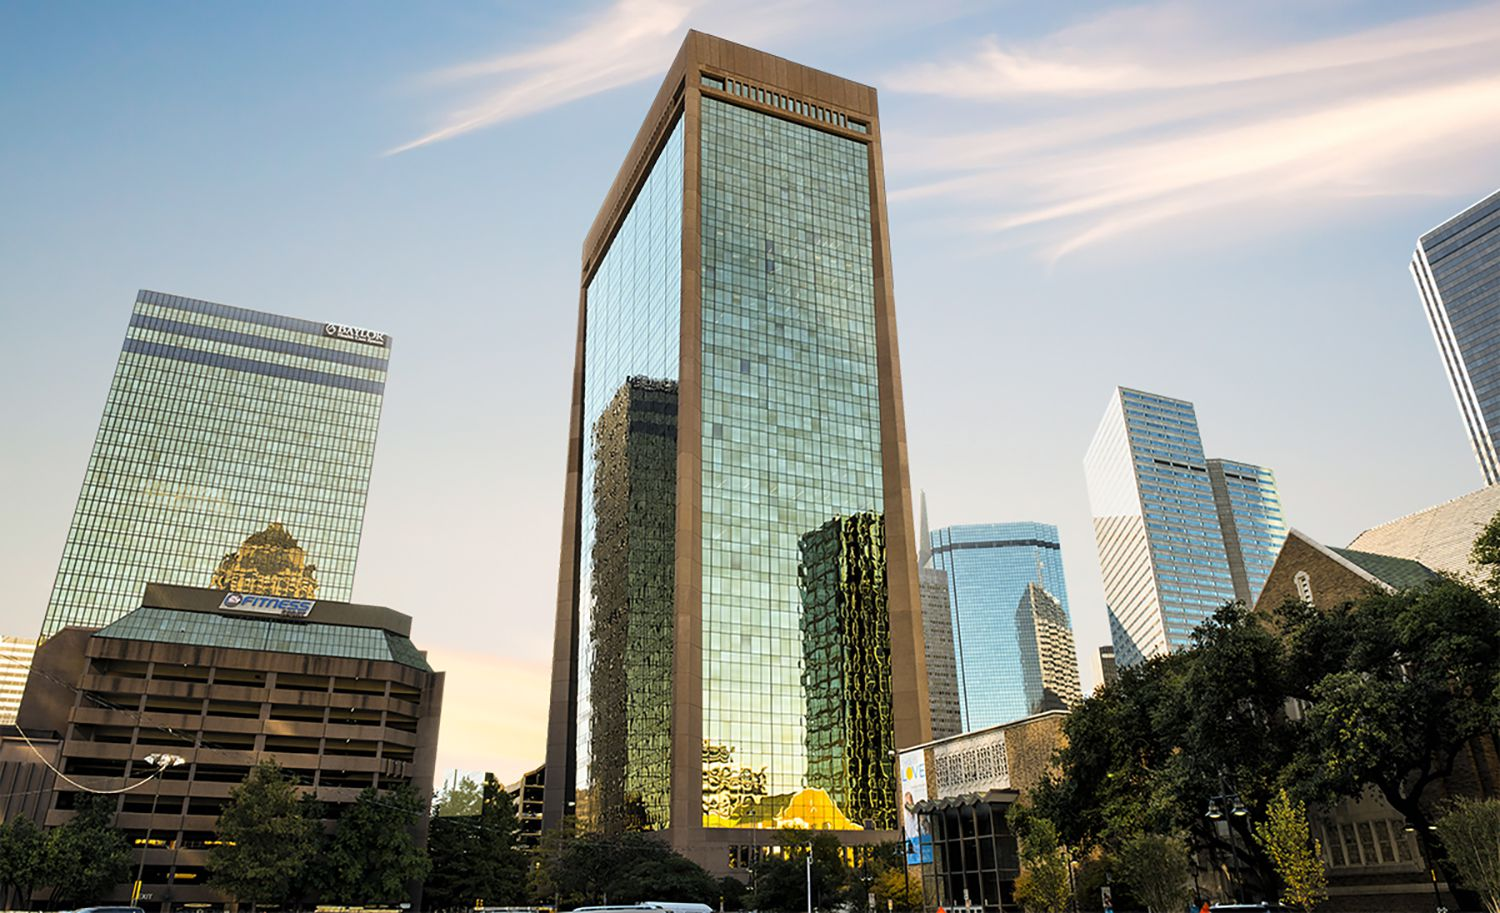 World Class Holdings bought downtown Dallas' 717 N. Harwood tower in 2014.